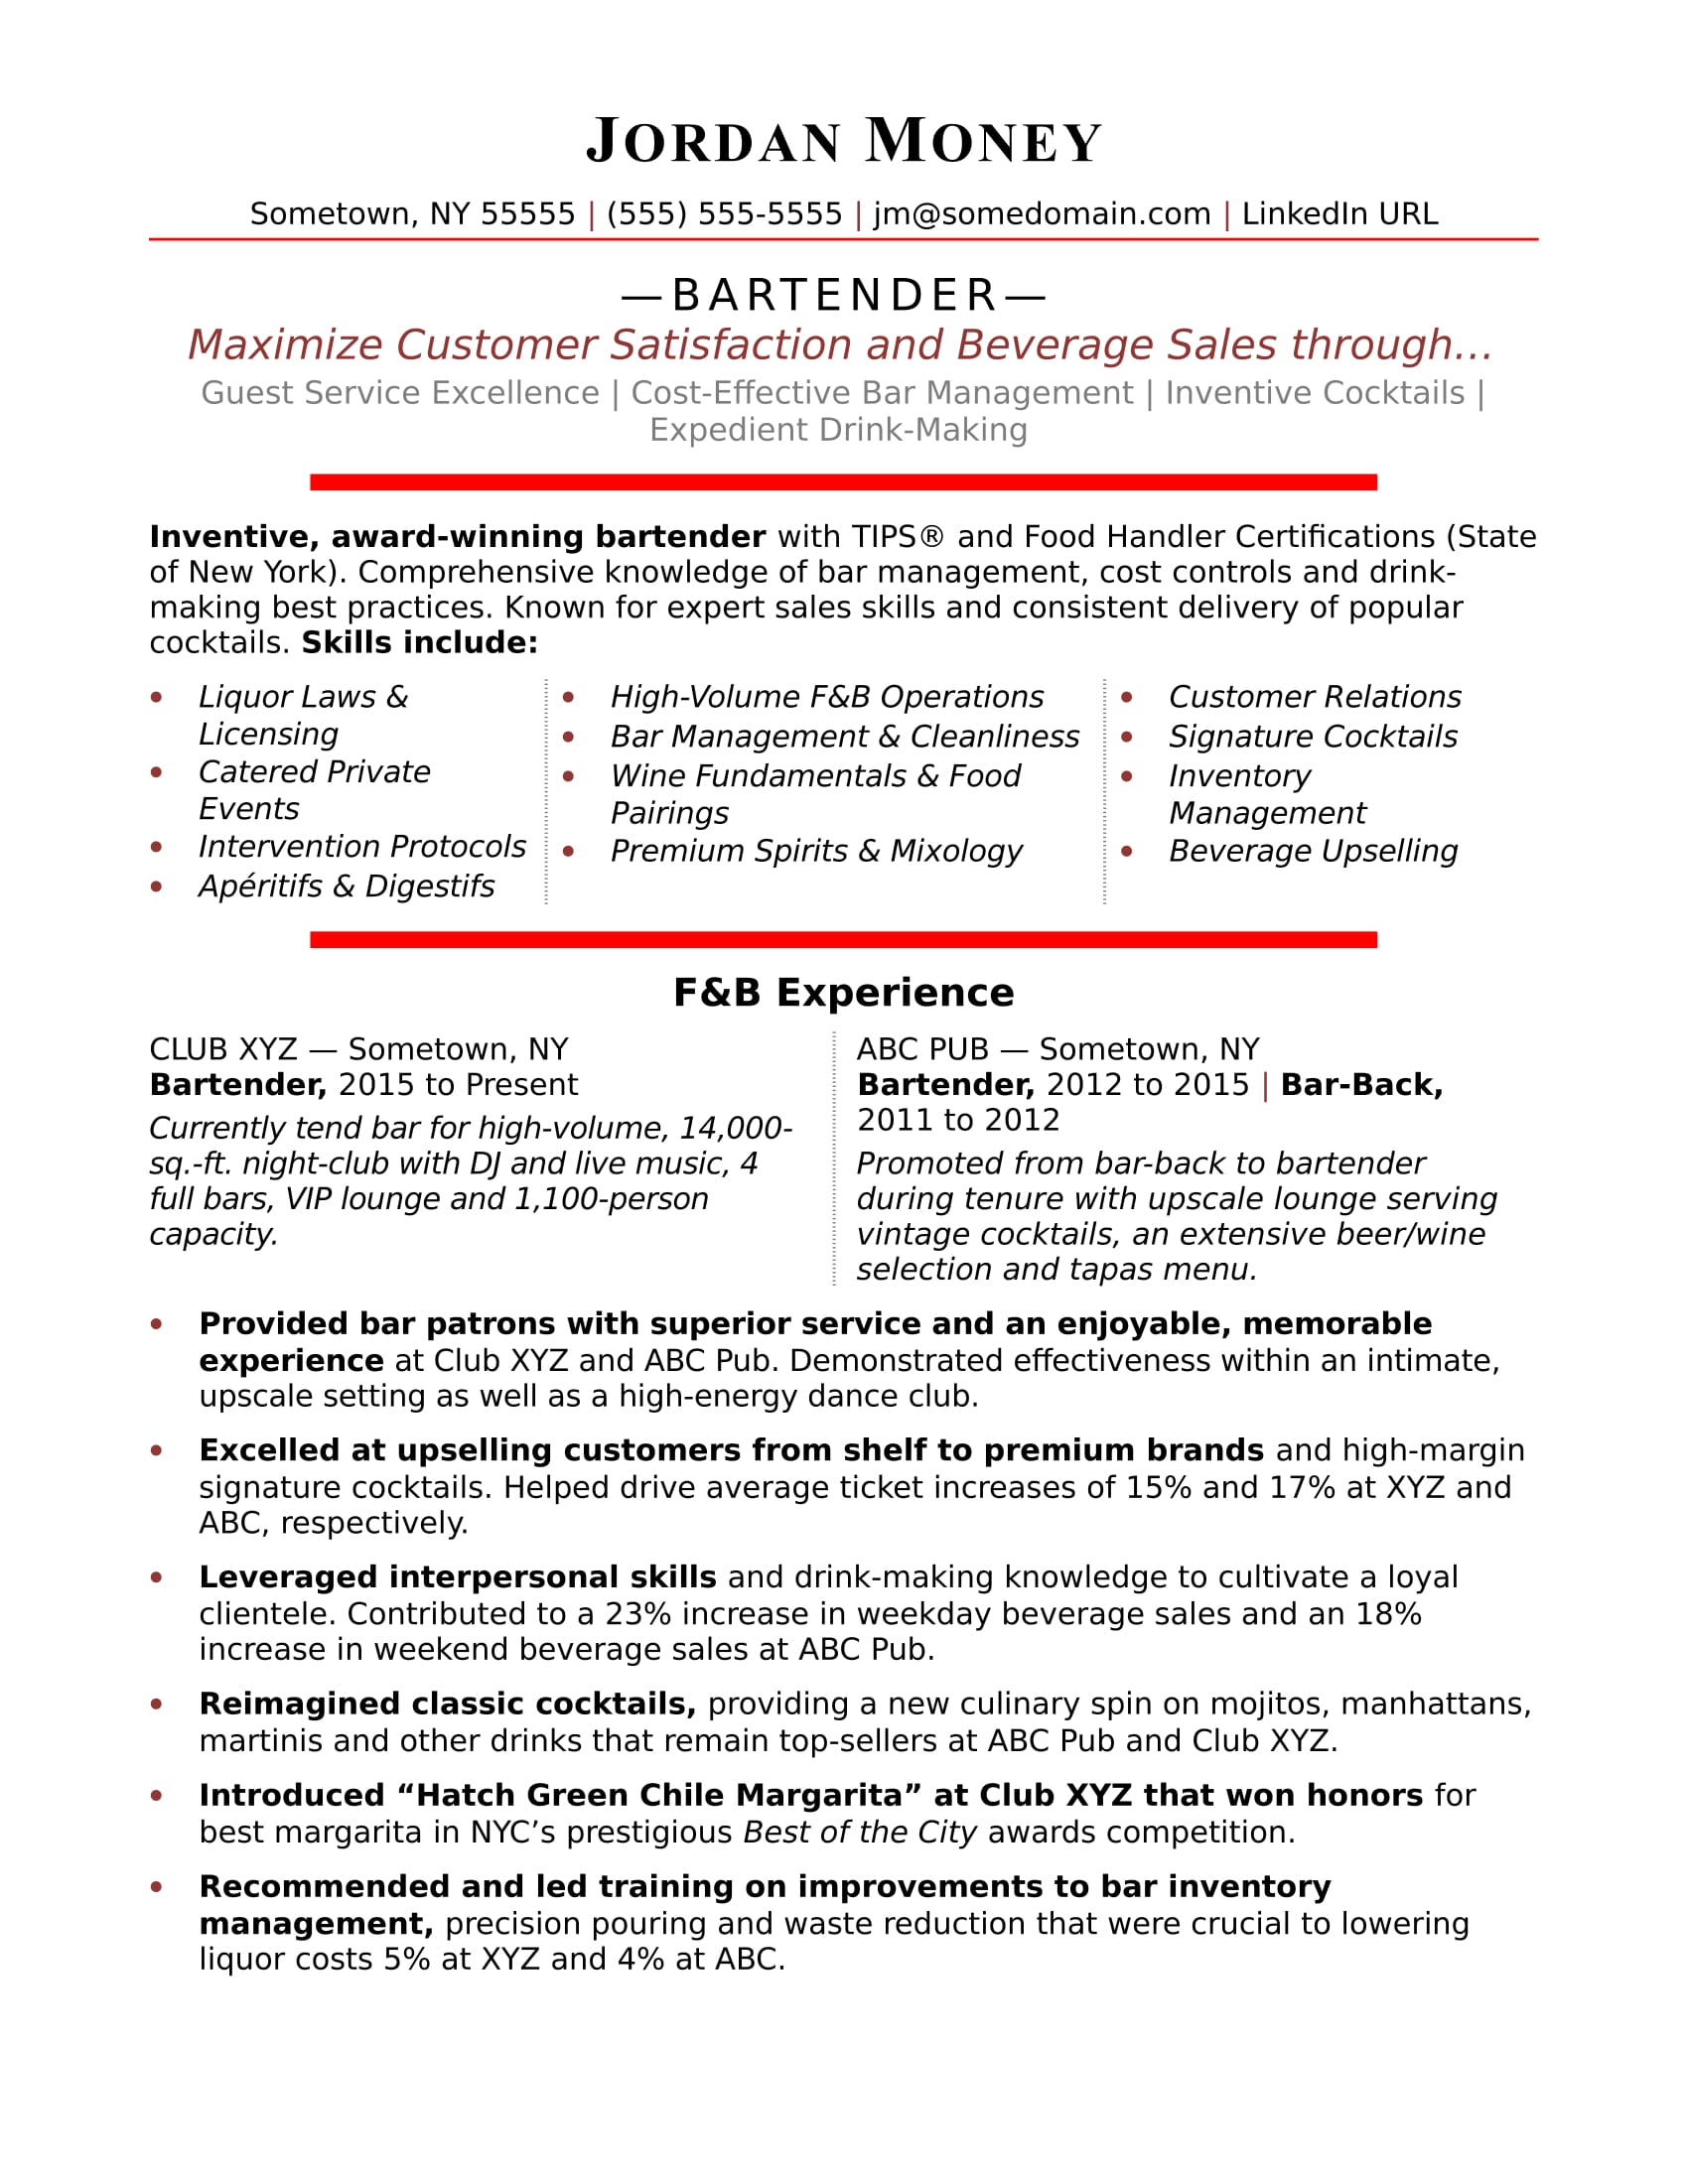 bartender resume sample monster template generic summary statement mortgage format Resume Bartender Resume Template